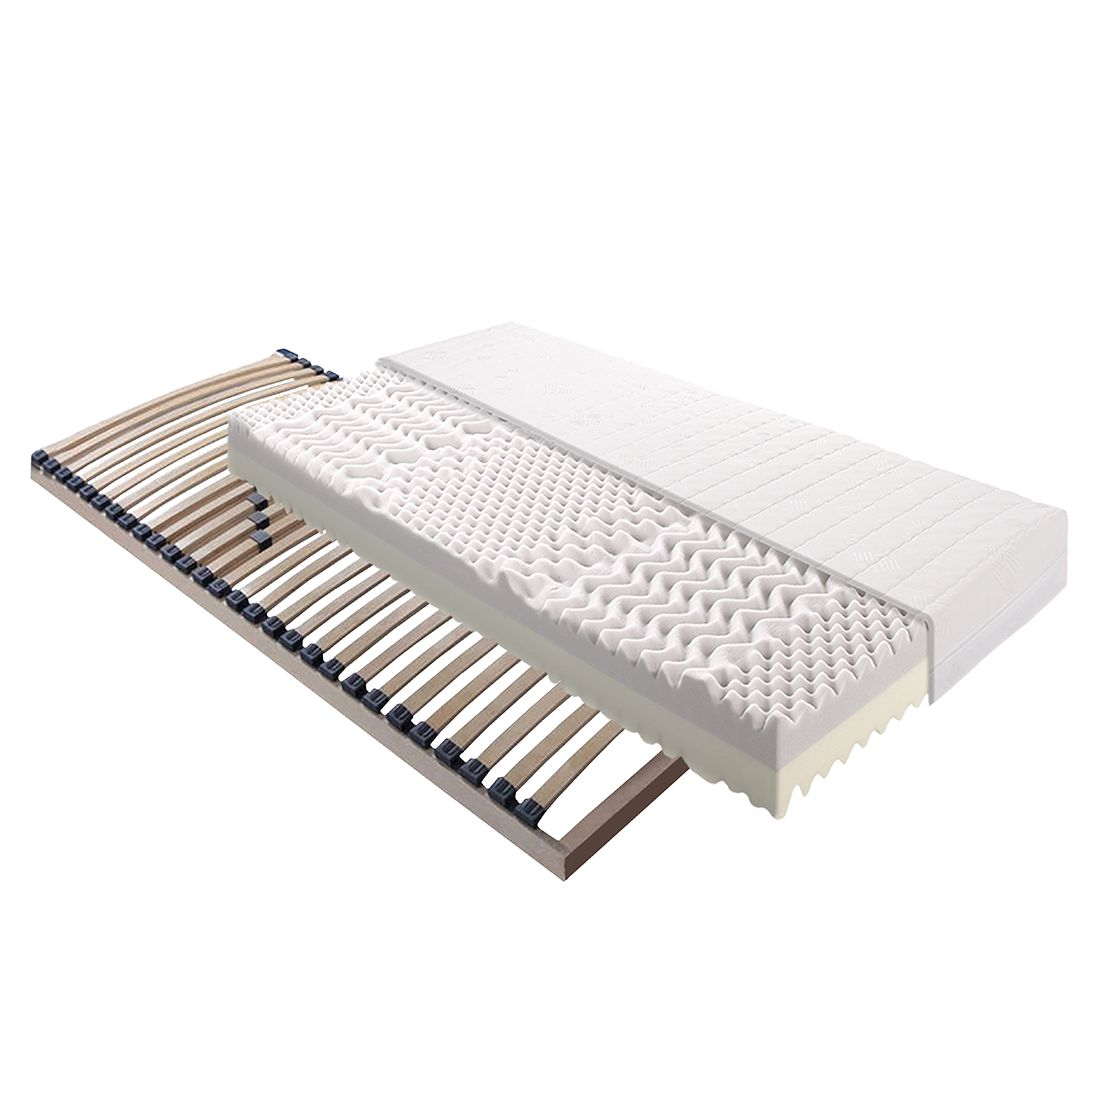 Ensemble matelas 7 zones en mousse ''duo'' Exlusive Sleep et sommier à  lattes Sirius - 90 x 200cm,